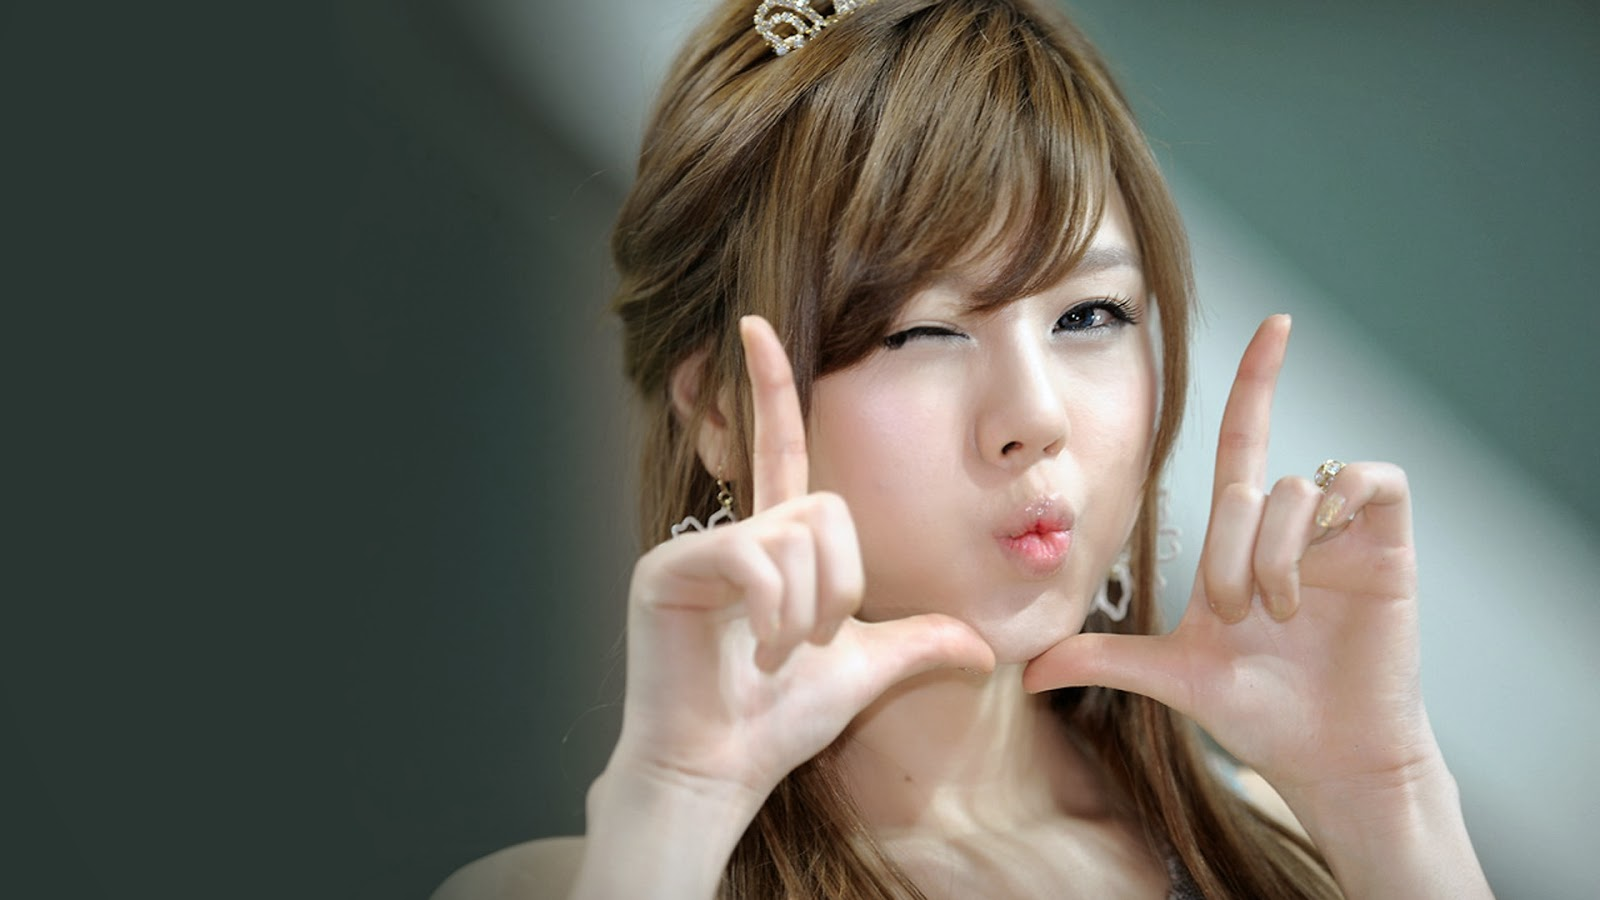 korean girl wallpaper - wallpapersafari